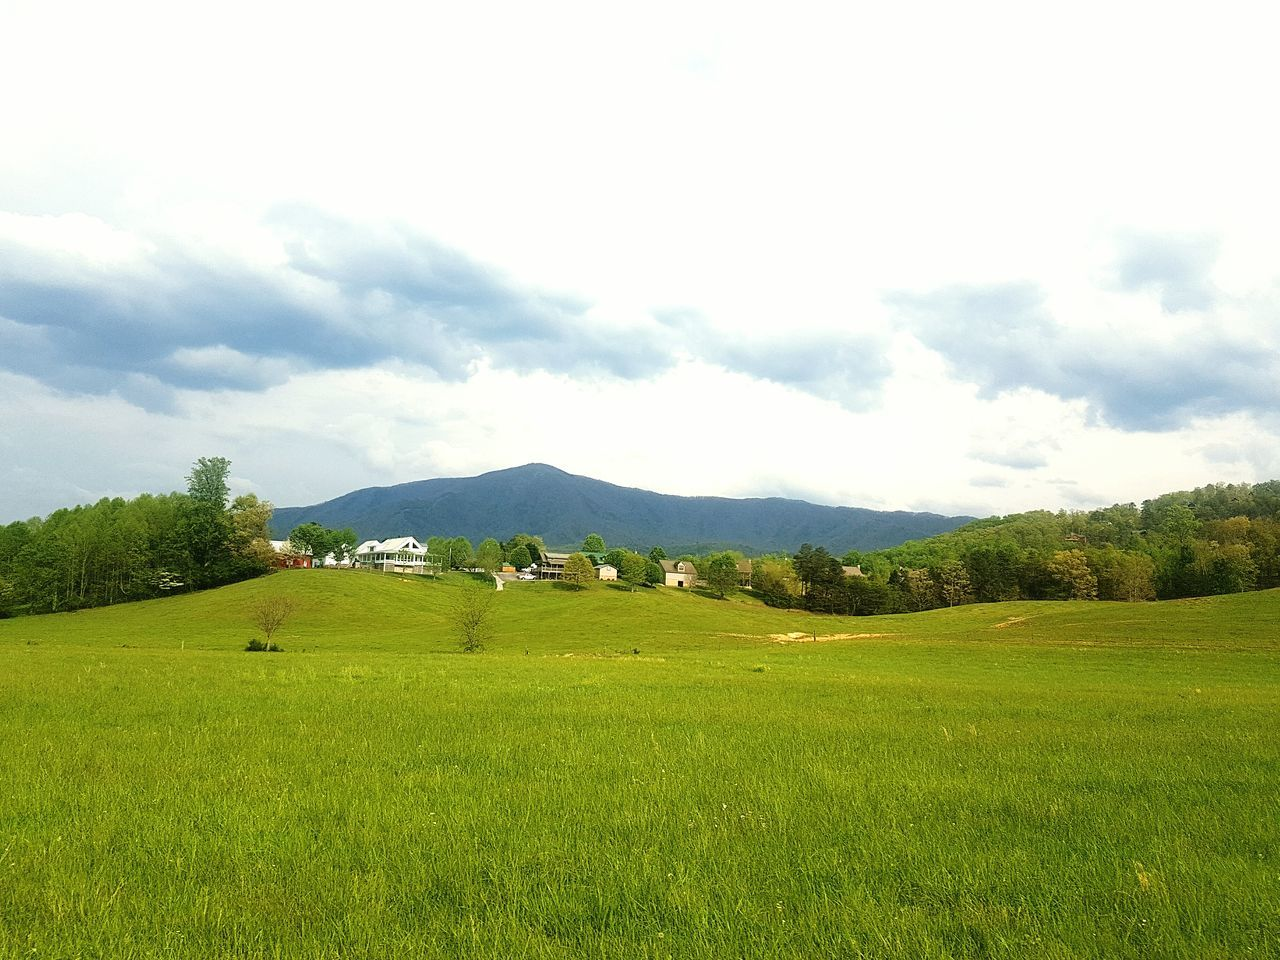 Tenessee Scenery Grass Mountains Rural Scene Nature Houses Eyemgallery Cosy Place Photo By Me Trees Feel The Journey